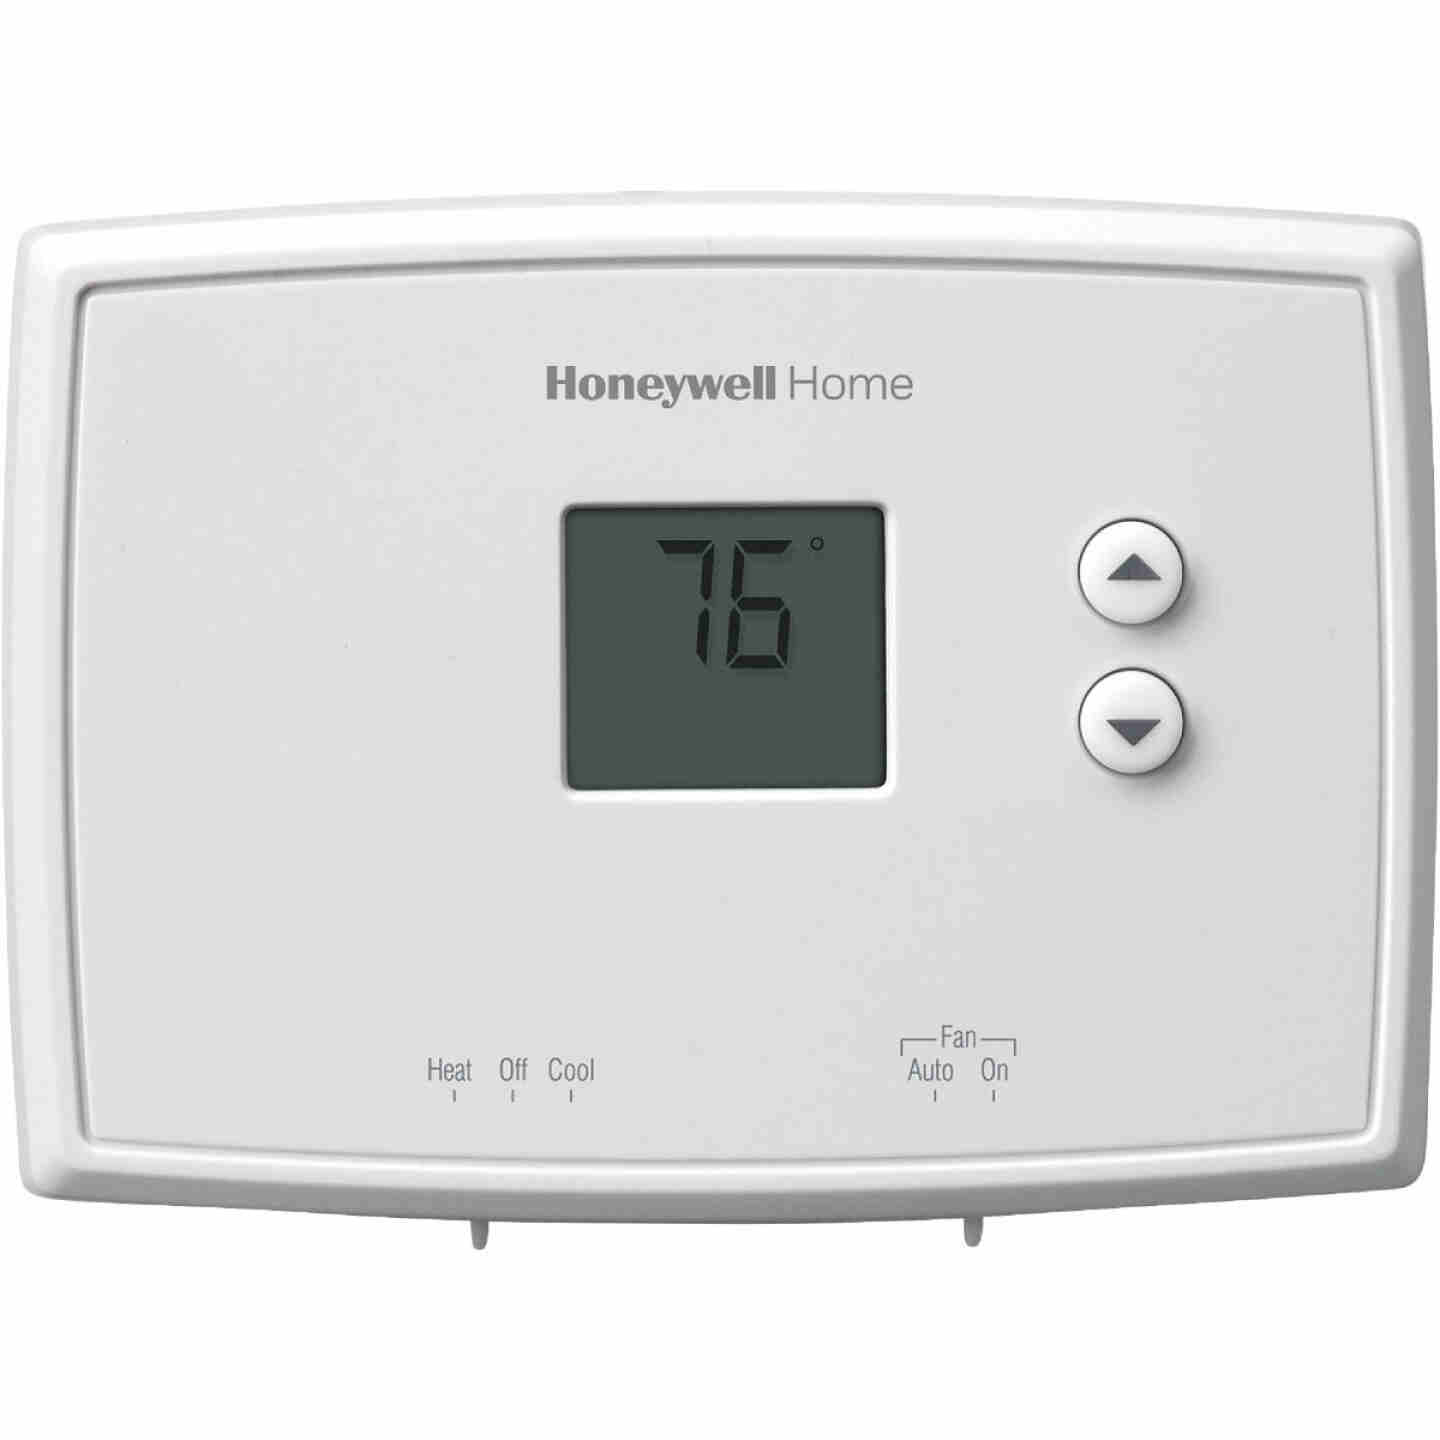 Honeywell Home Non-Programmable White Digital Thermostat Image 1